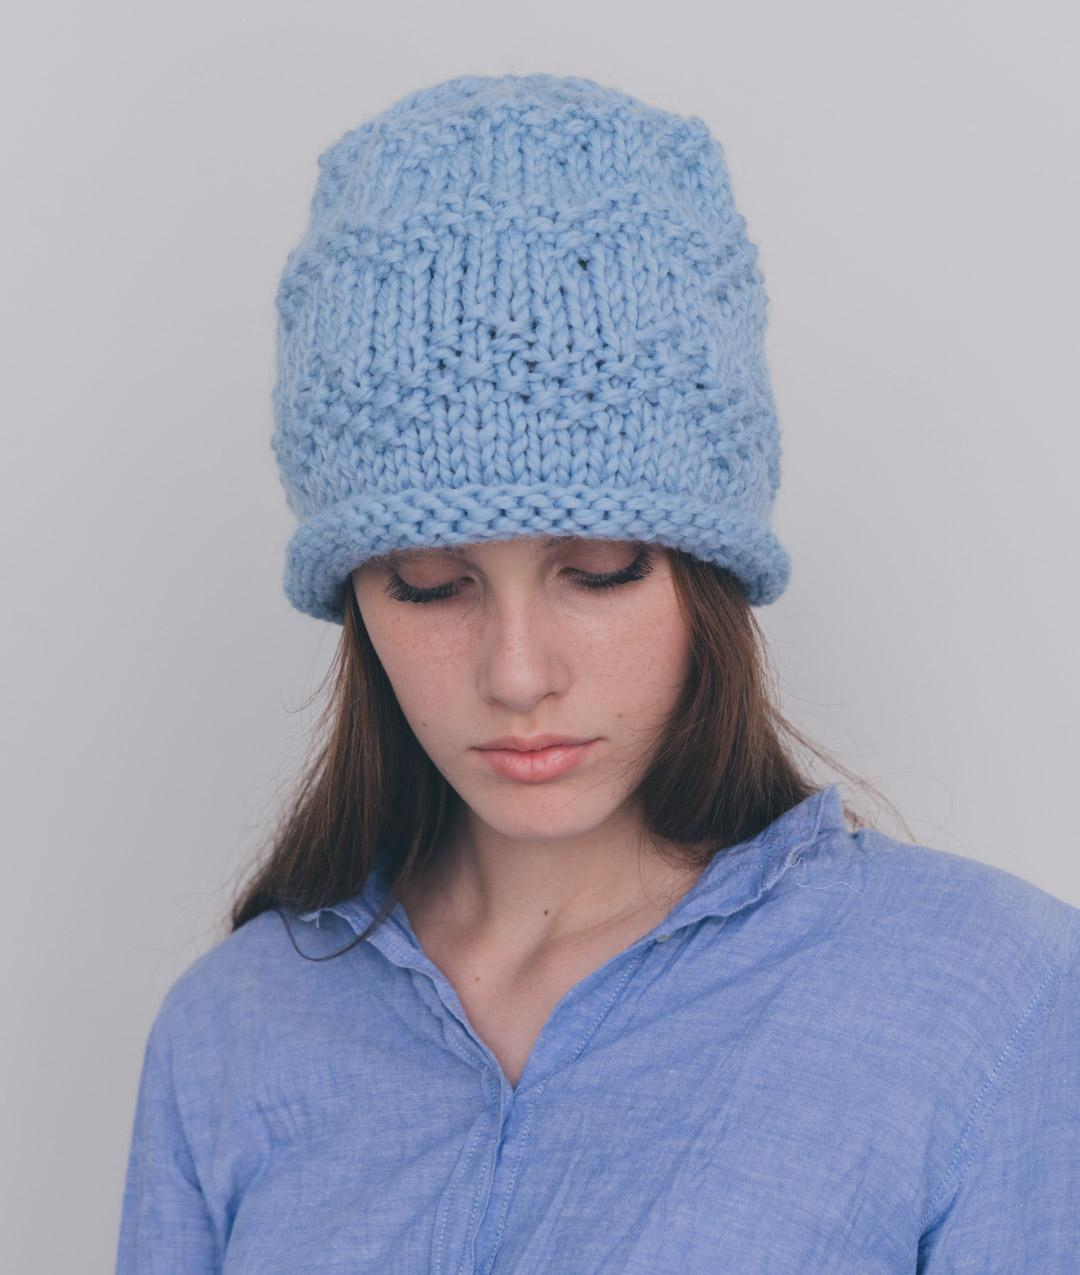 Sweaters and Tops - Hats and Beanies -  - CELEGORN HAT - 1